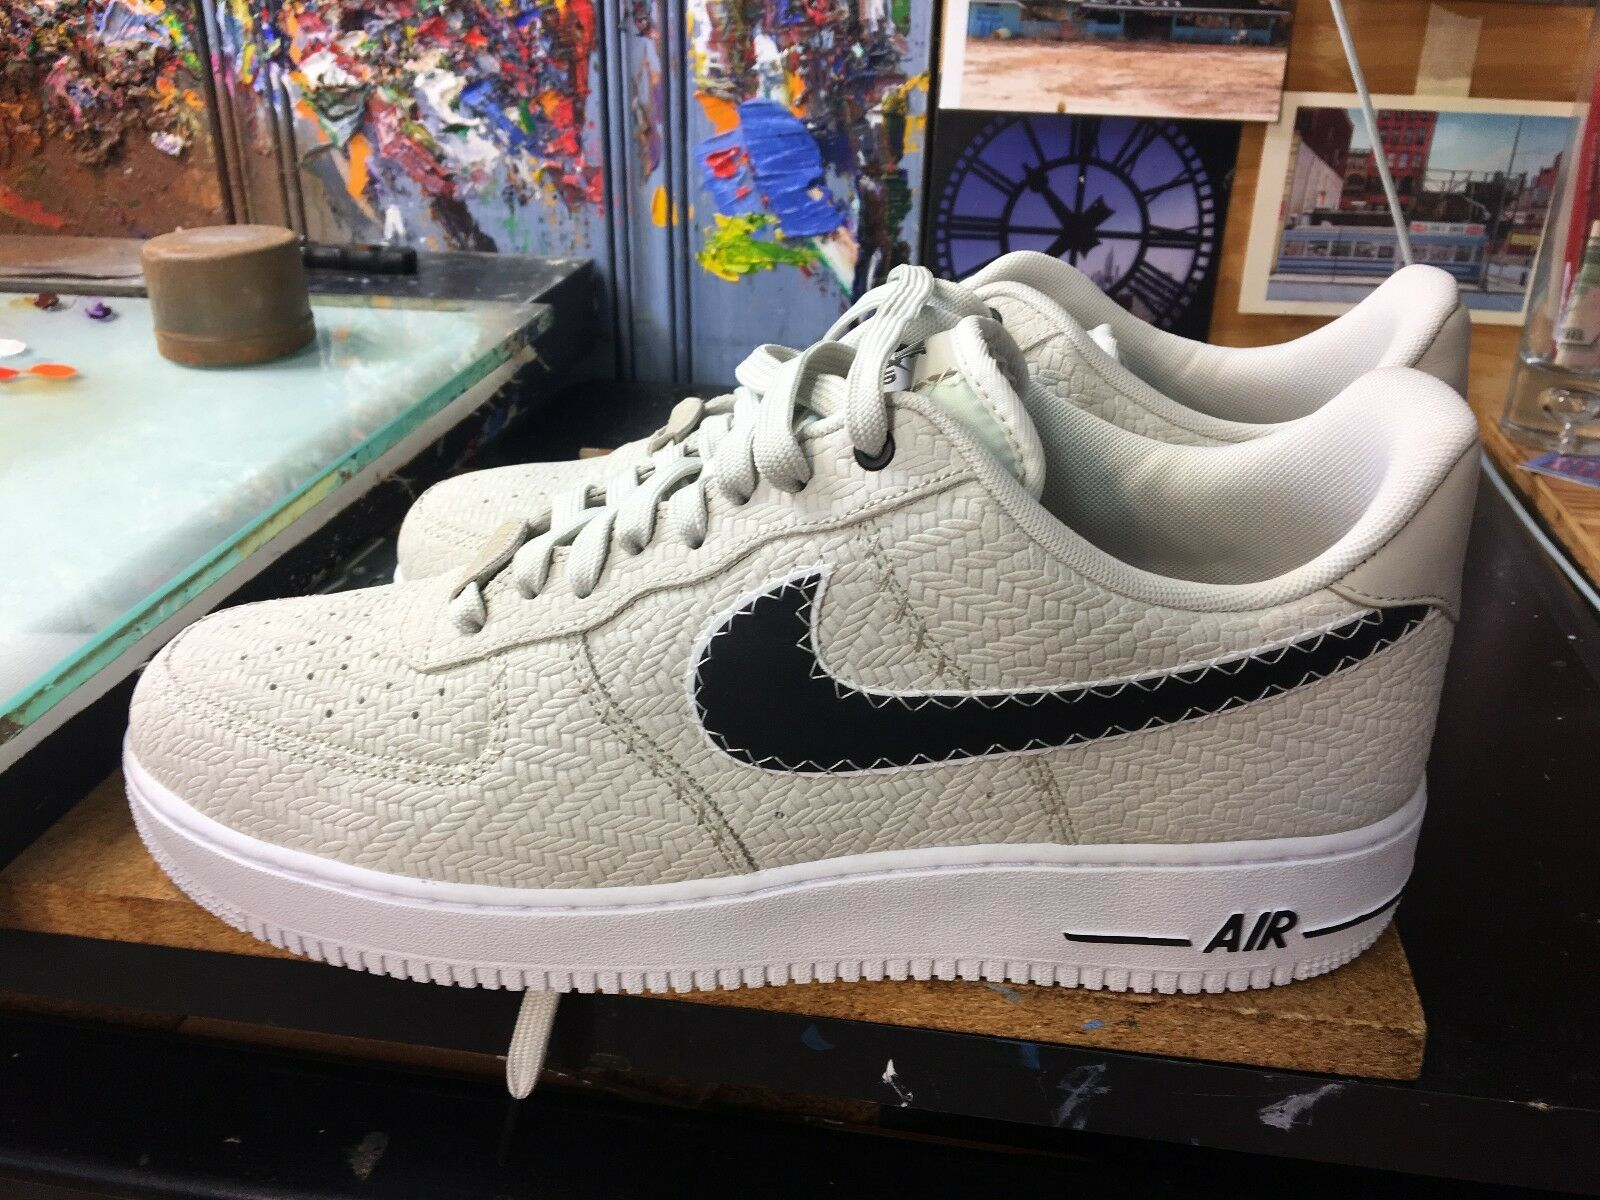 Nike Air Force 1 '07 N7 US Light Bone/Black-White NIB Size US N7 13 Men AO2369 001 97b313